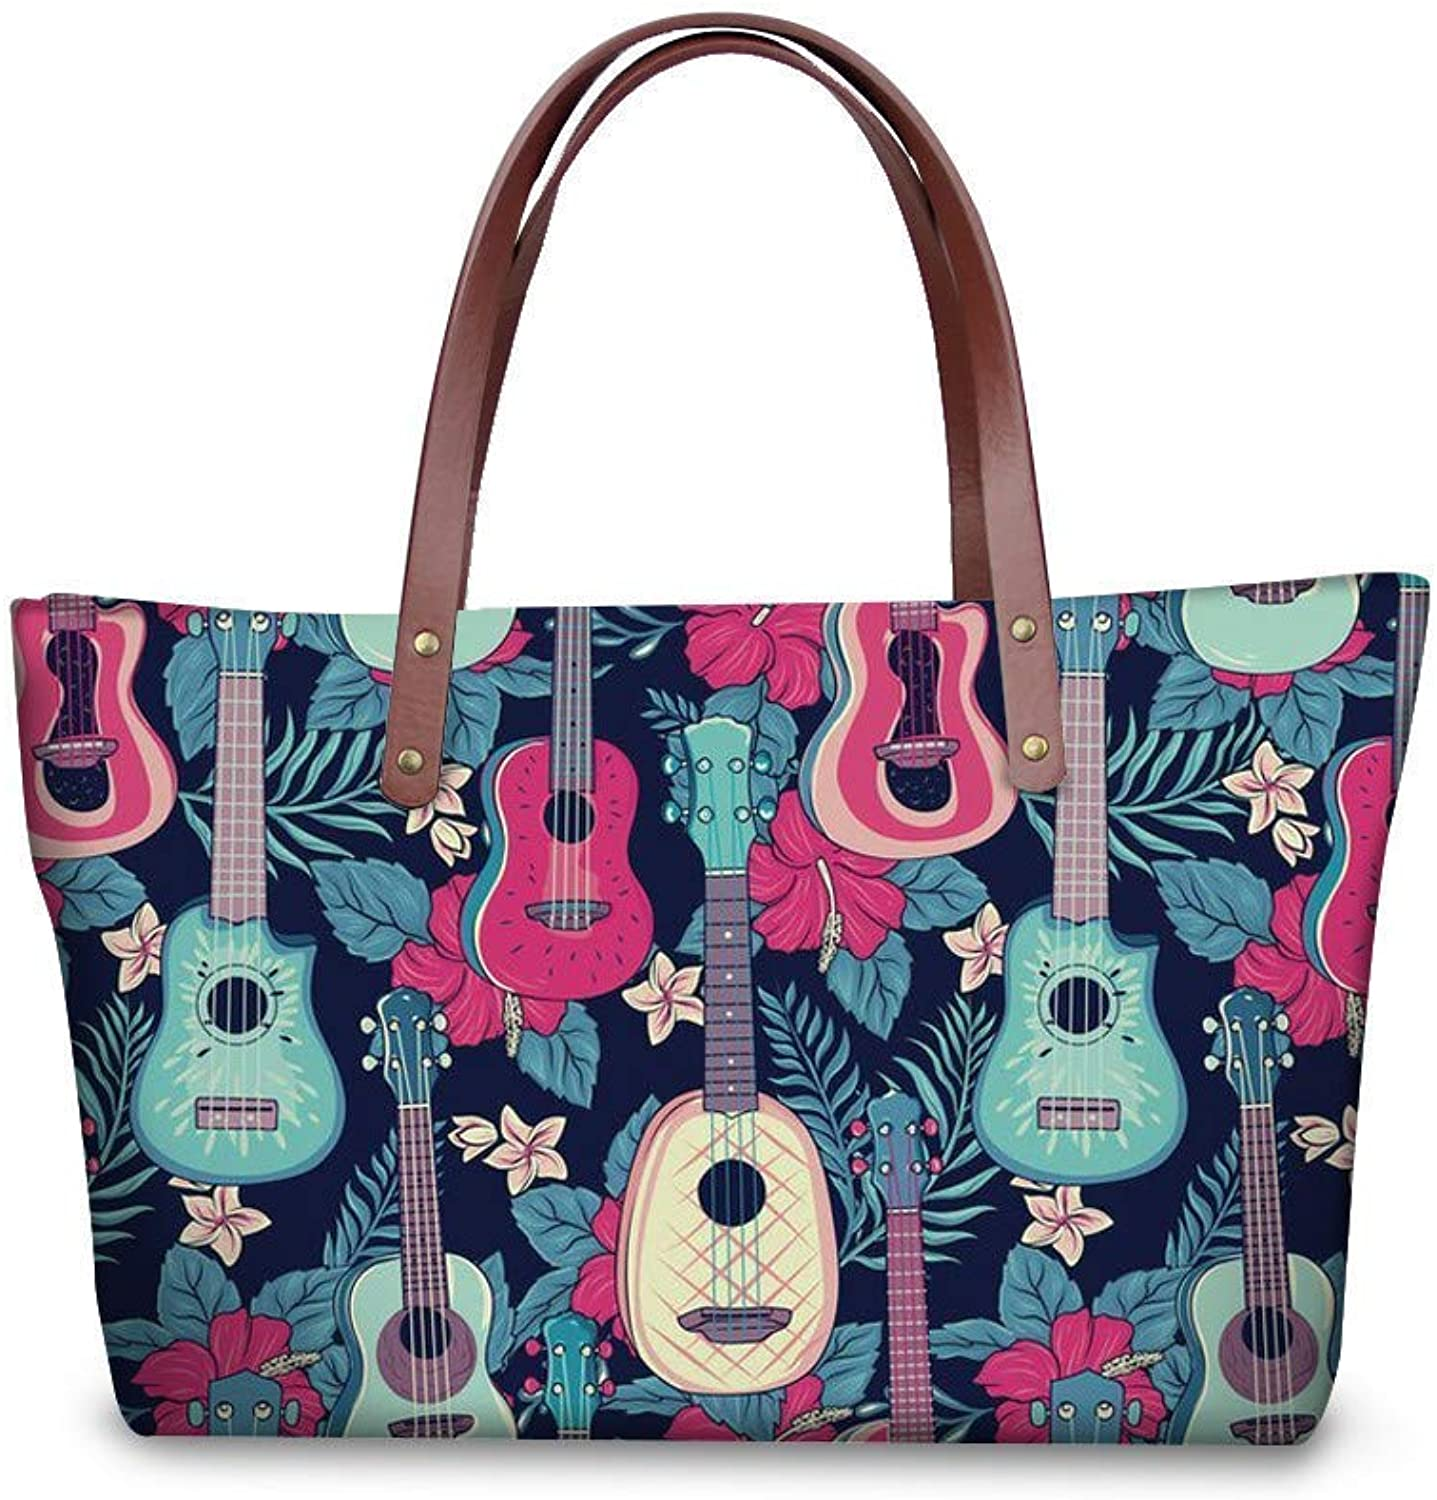 Bloomerang FORUDESIGNS DJ Guitar Women Handbag Rainbow Music Notes Print Ladies Large Shoulder Bags Beach Bag Shopping Girls Casual Totes color T1220AL 49x29x39x11cm